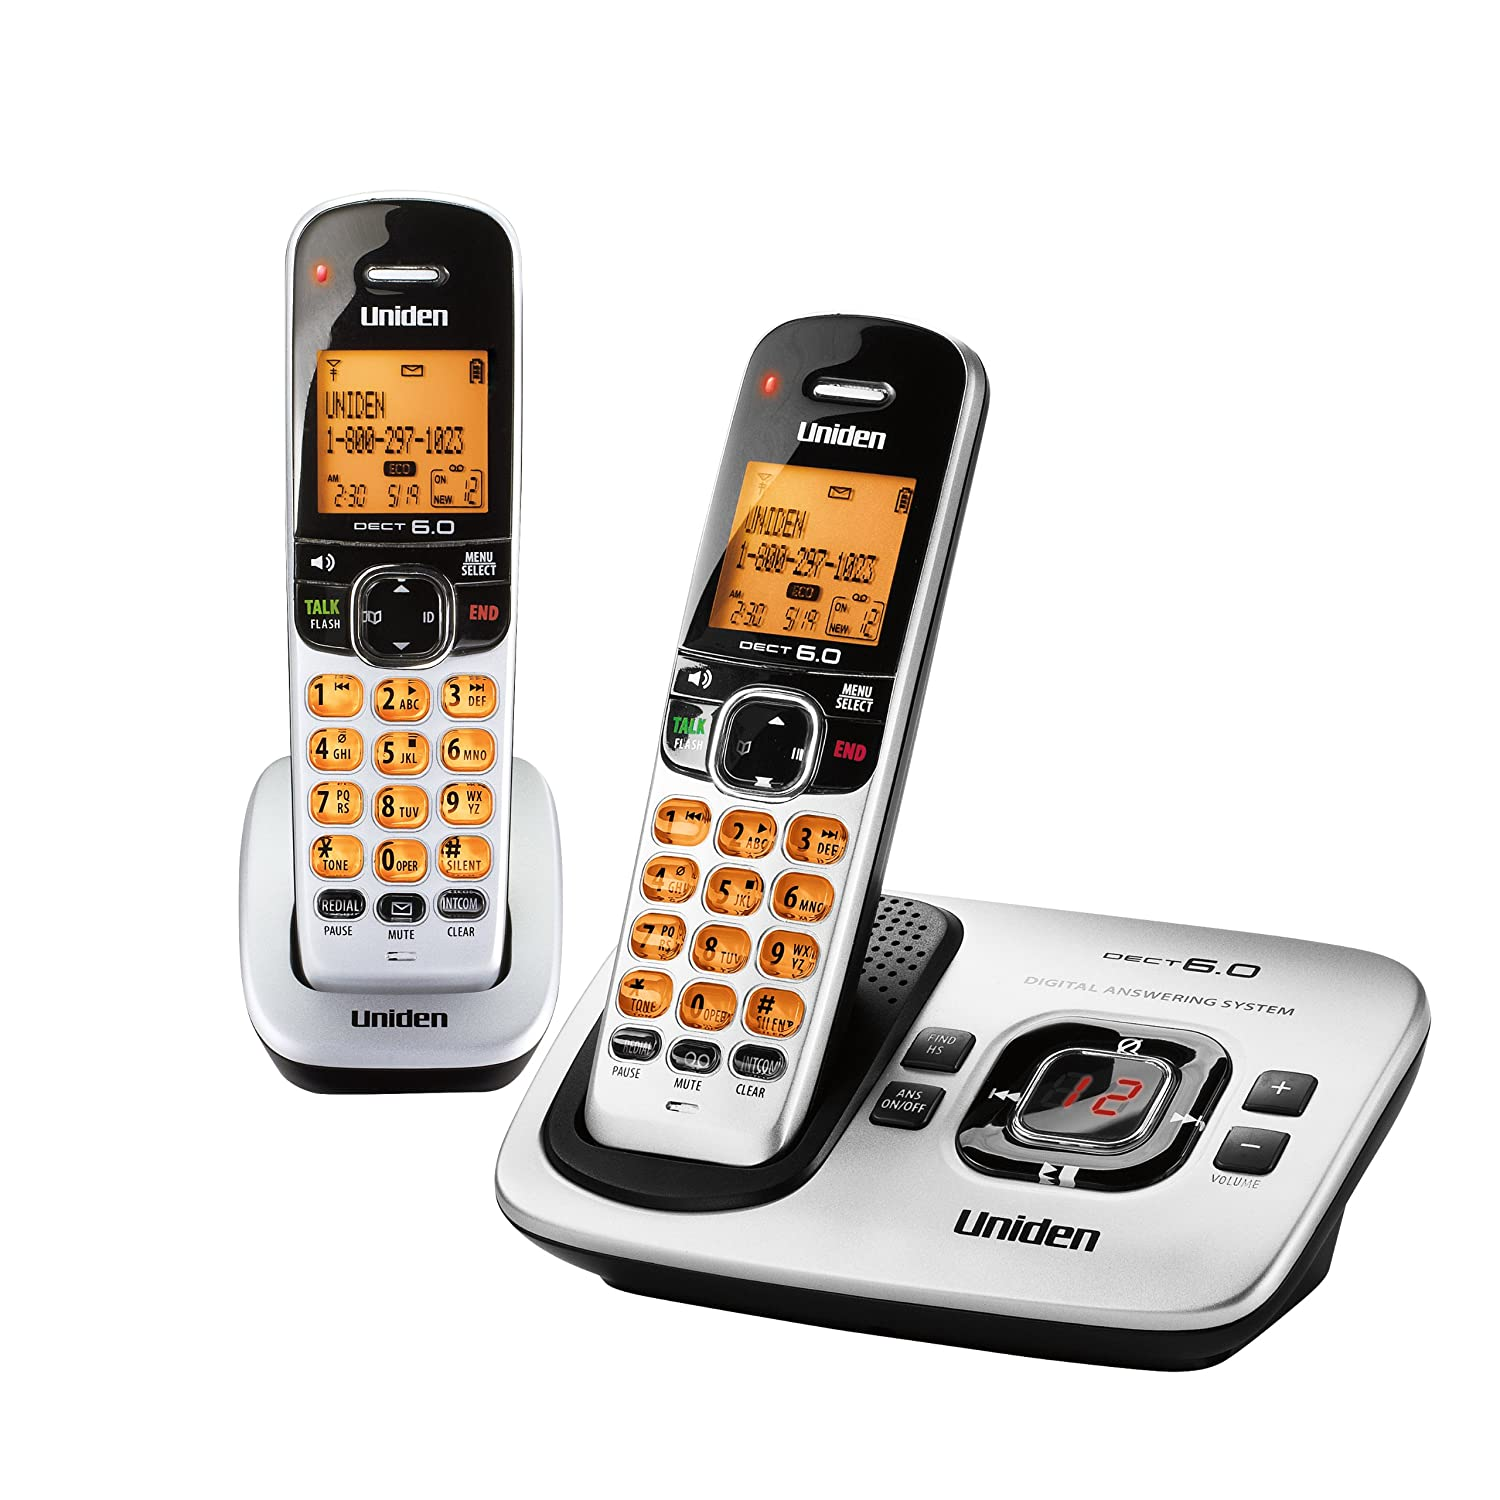 Amazon.com : D1760-2 DECT 6.0 Expandable Cordless Phone with Caller ID,  Silver, 2 Handsets : Cordless Telephones : Office Products